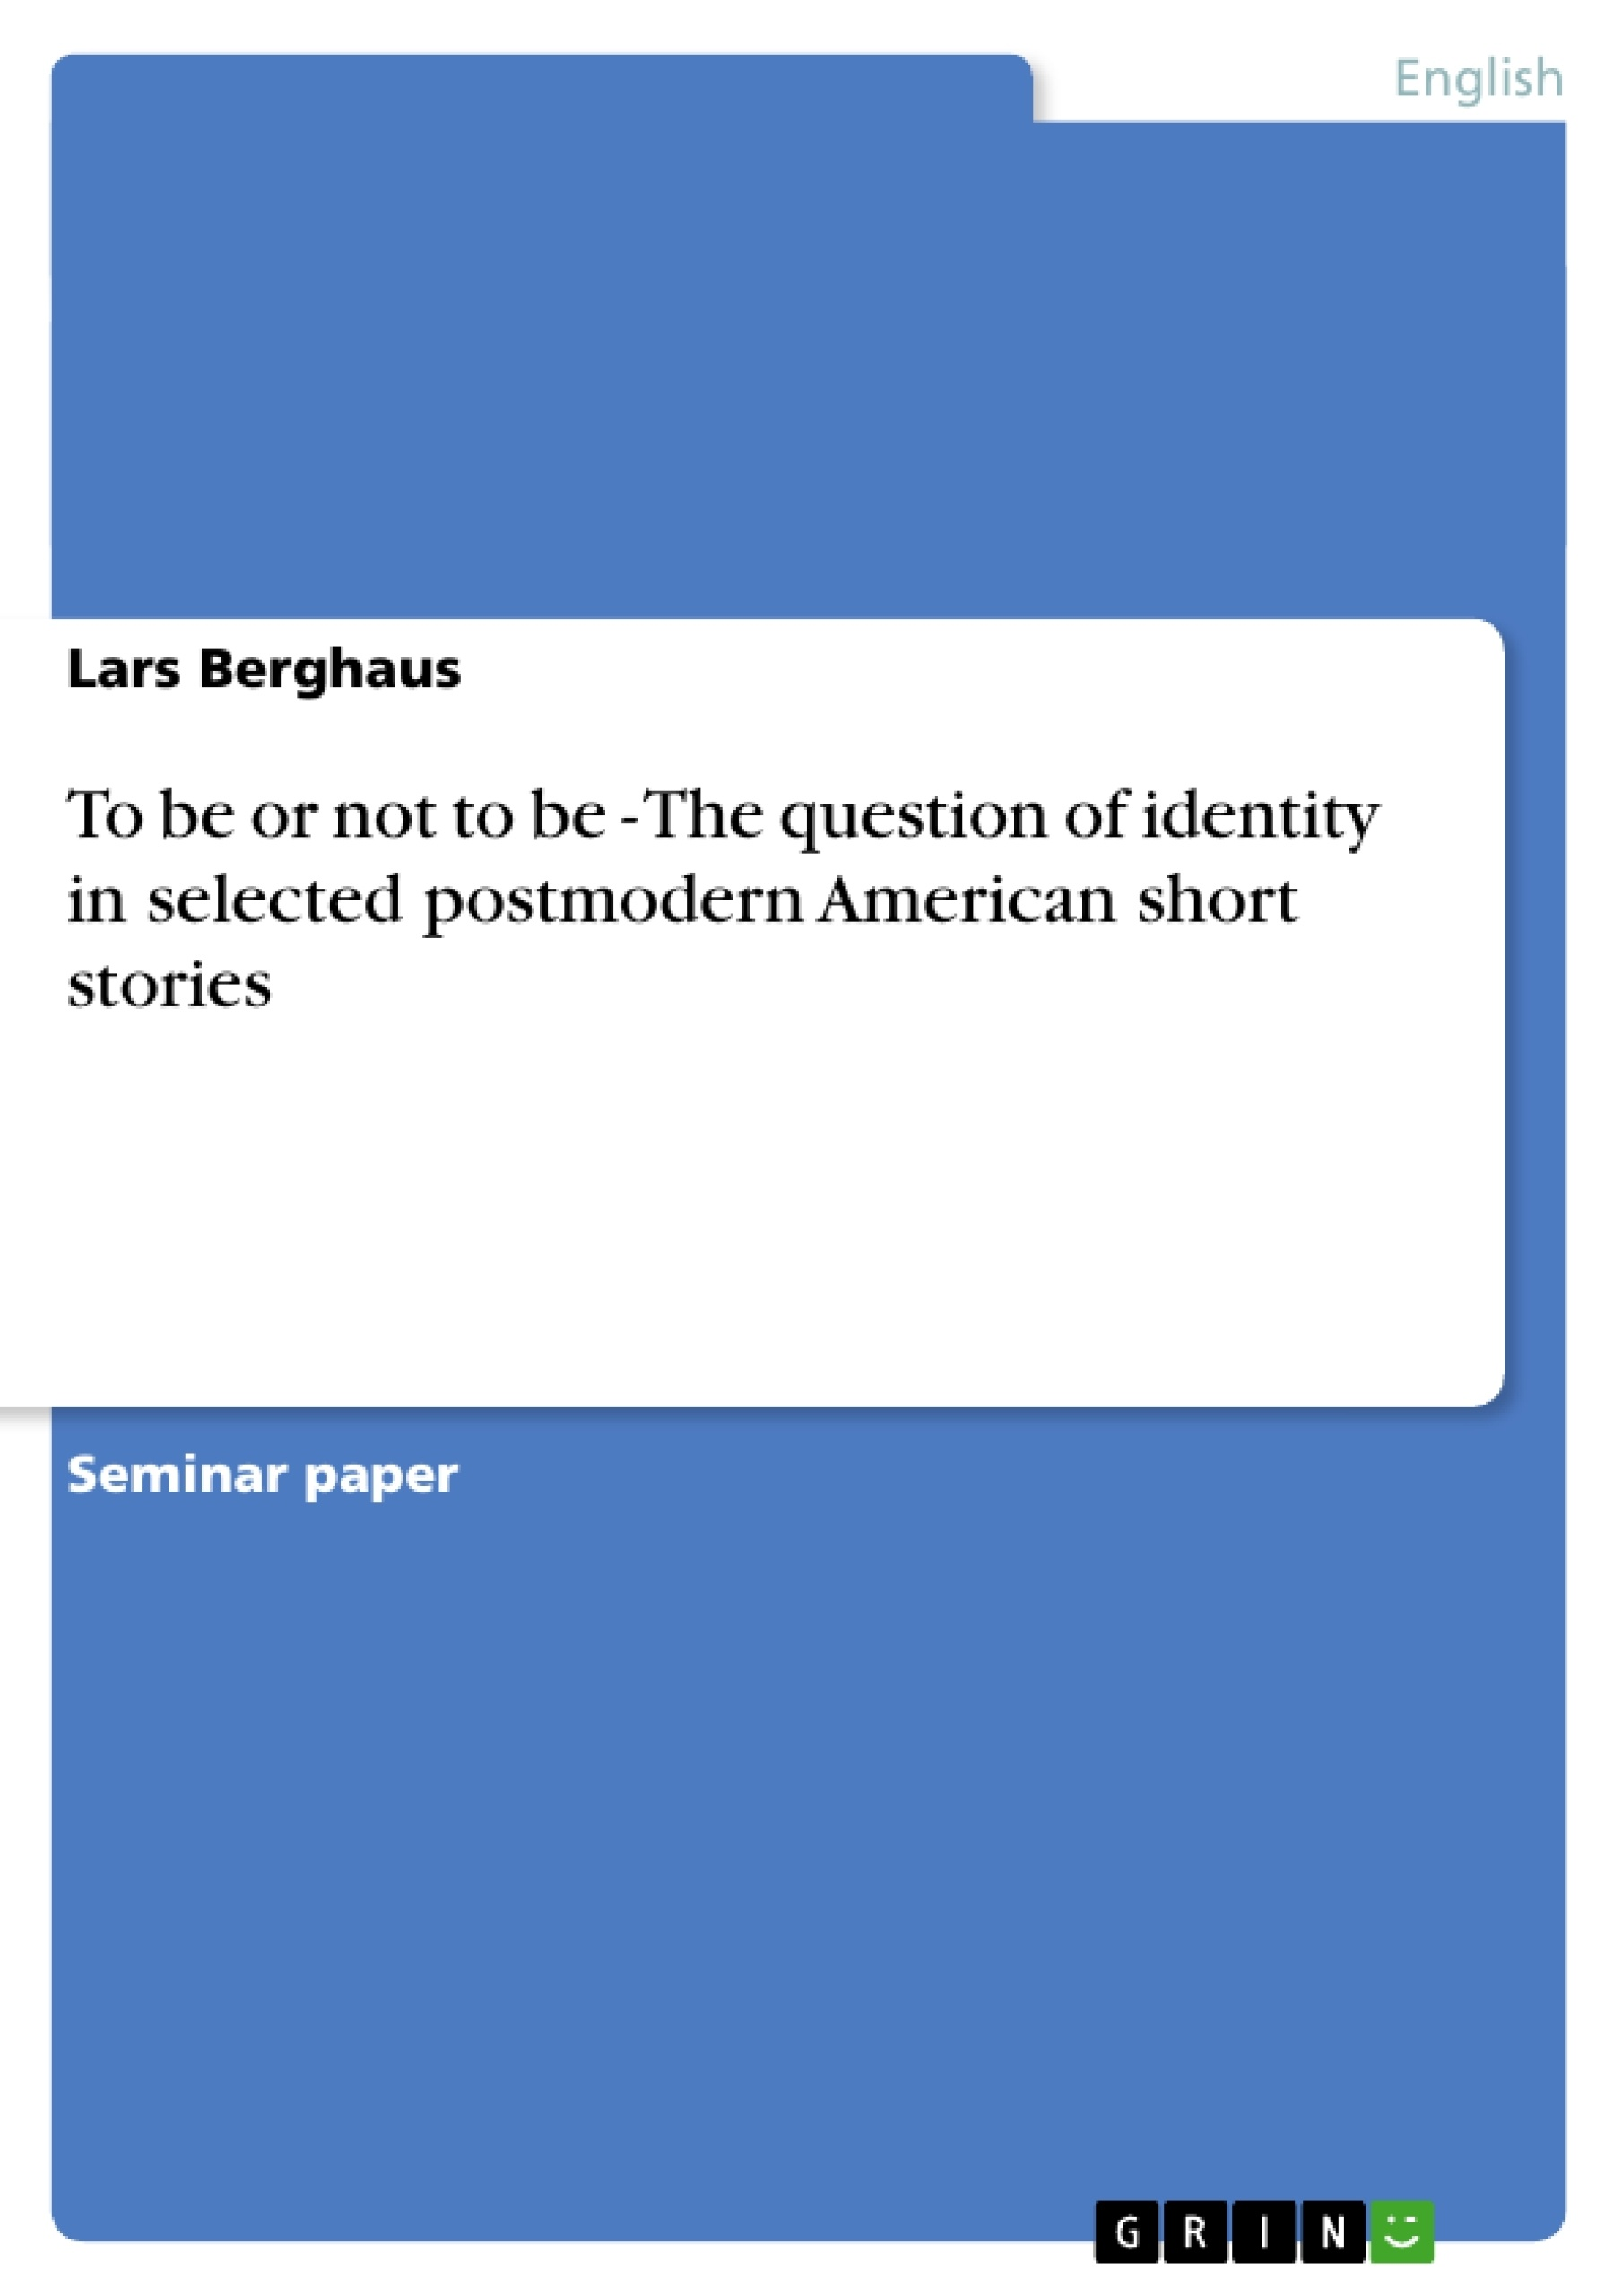 Title: To be or not to be - The question of identity in selected postmodern American short stories